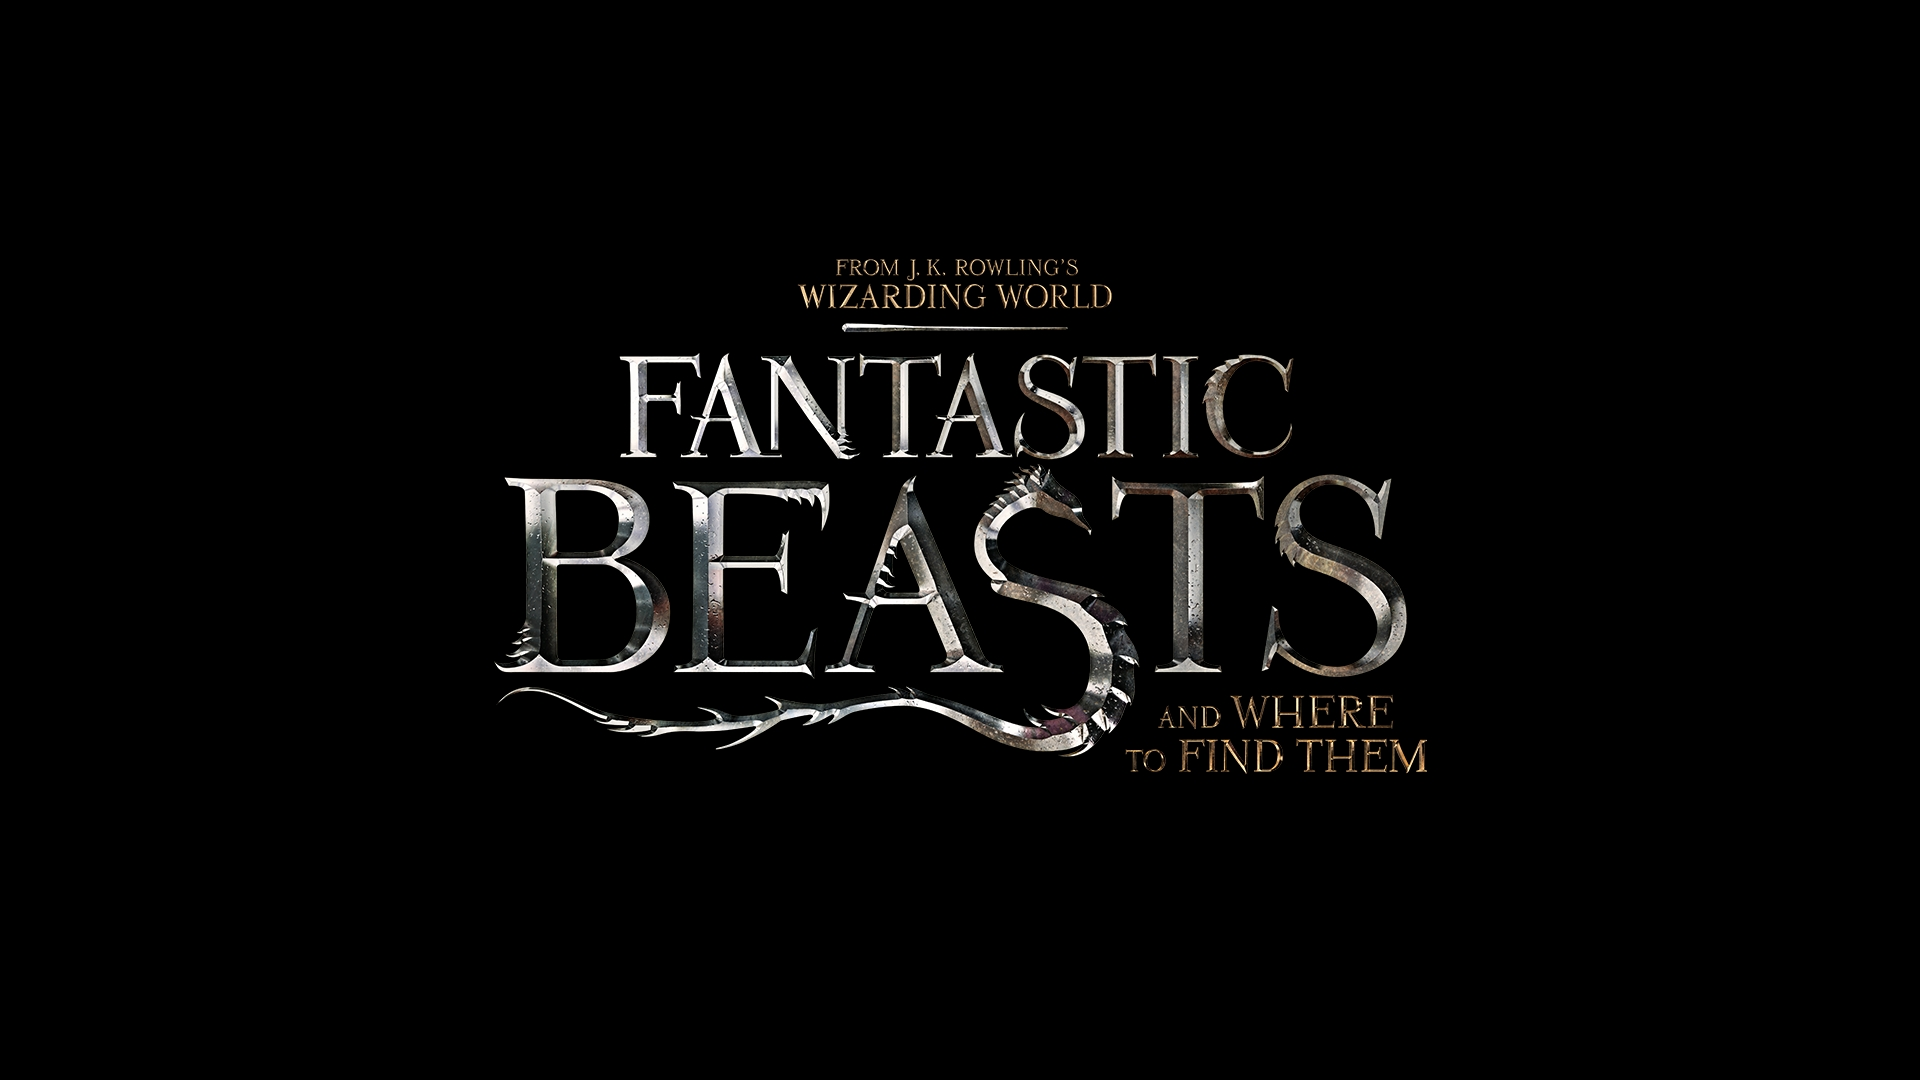 Fantastic-Beasts-and-Where-to-Find-Them-Logo.jpg